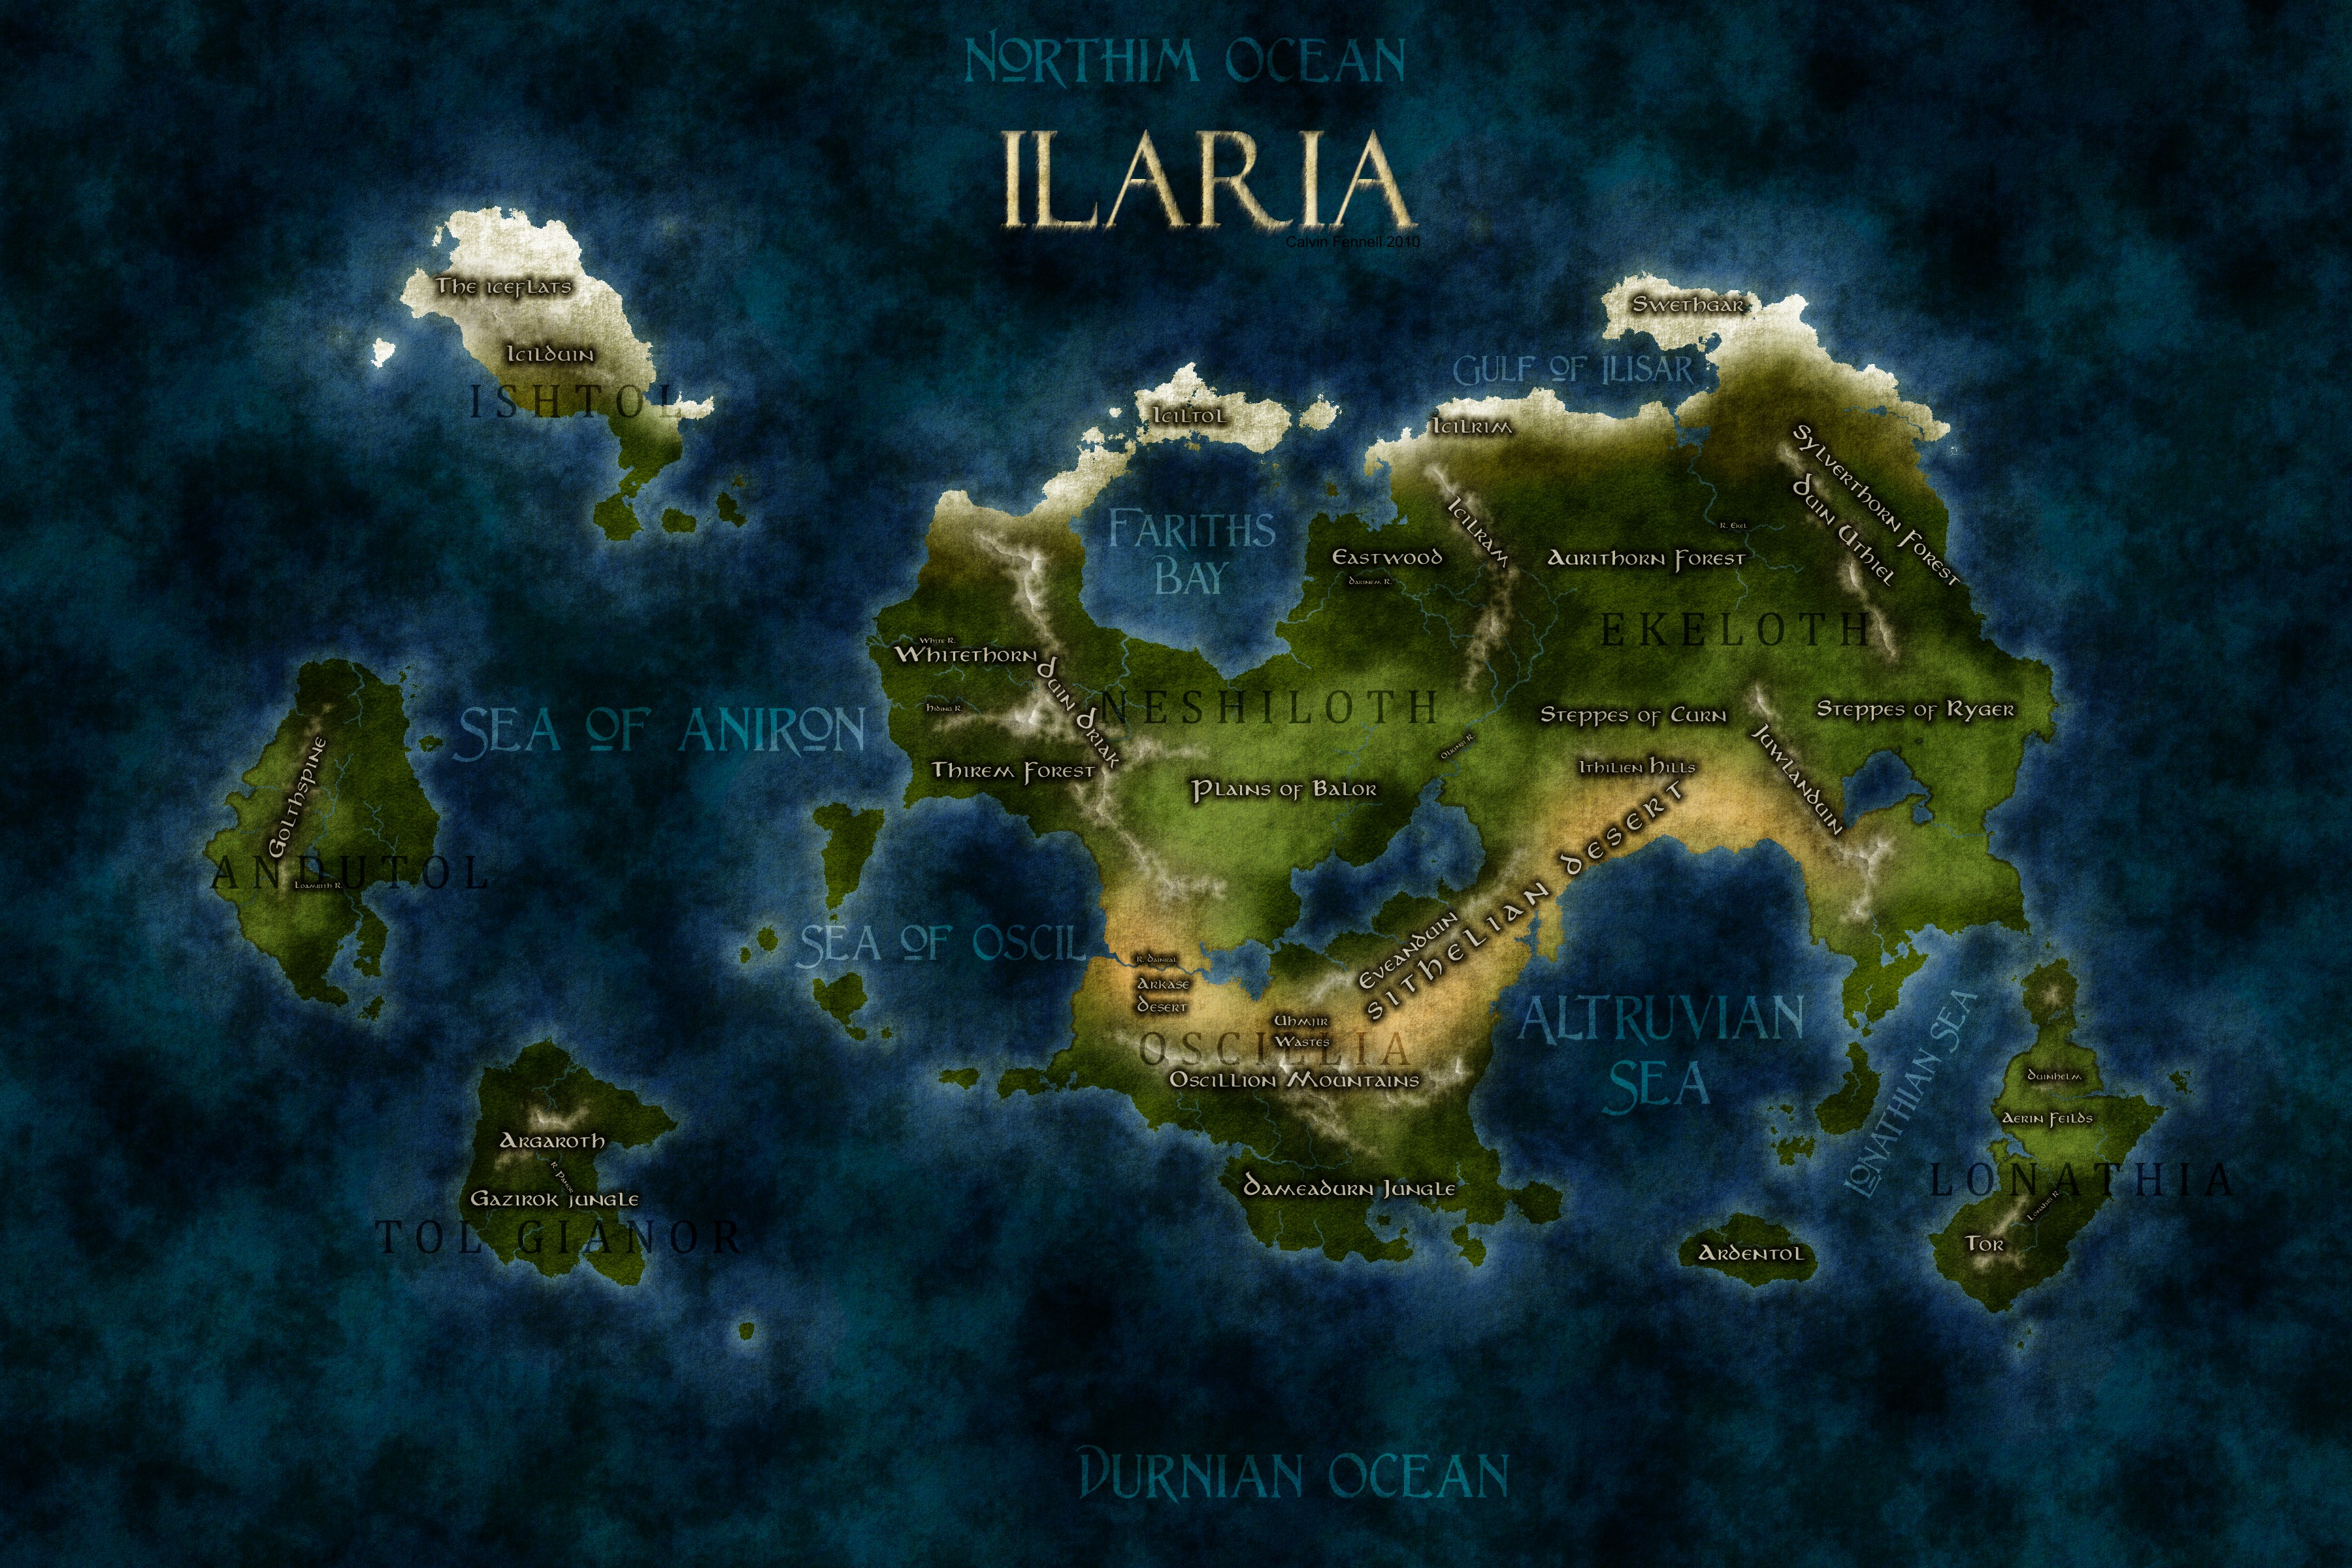 Ilaria (geographical)